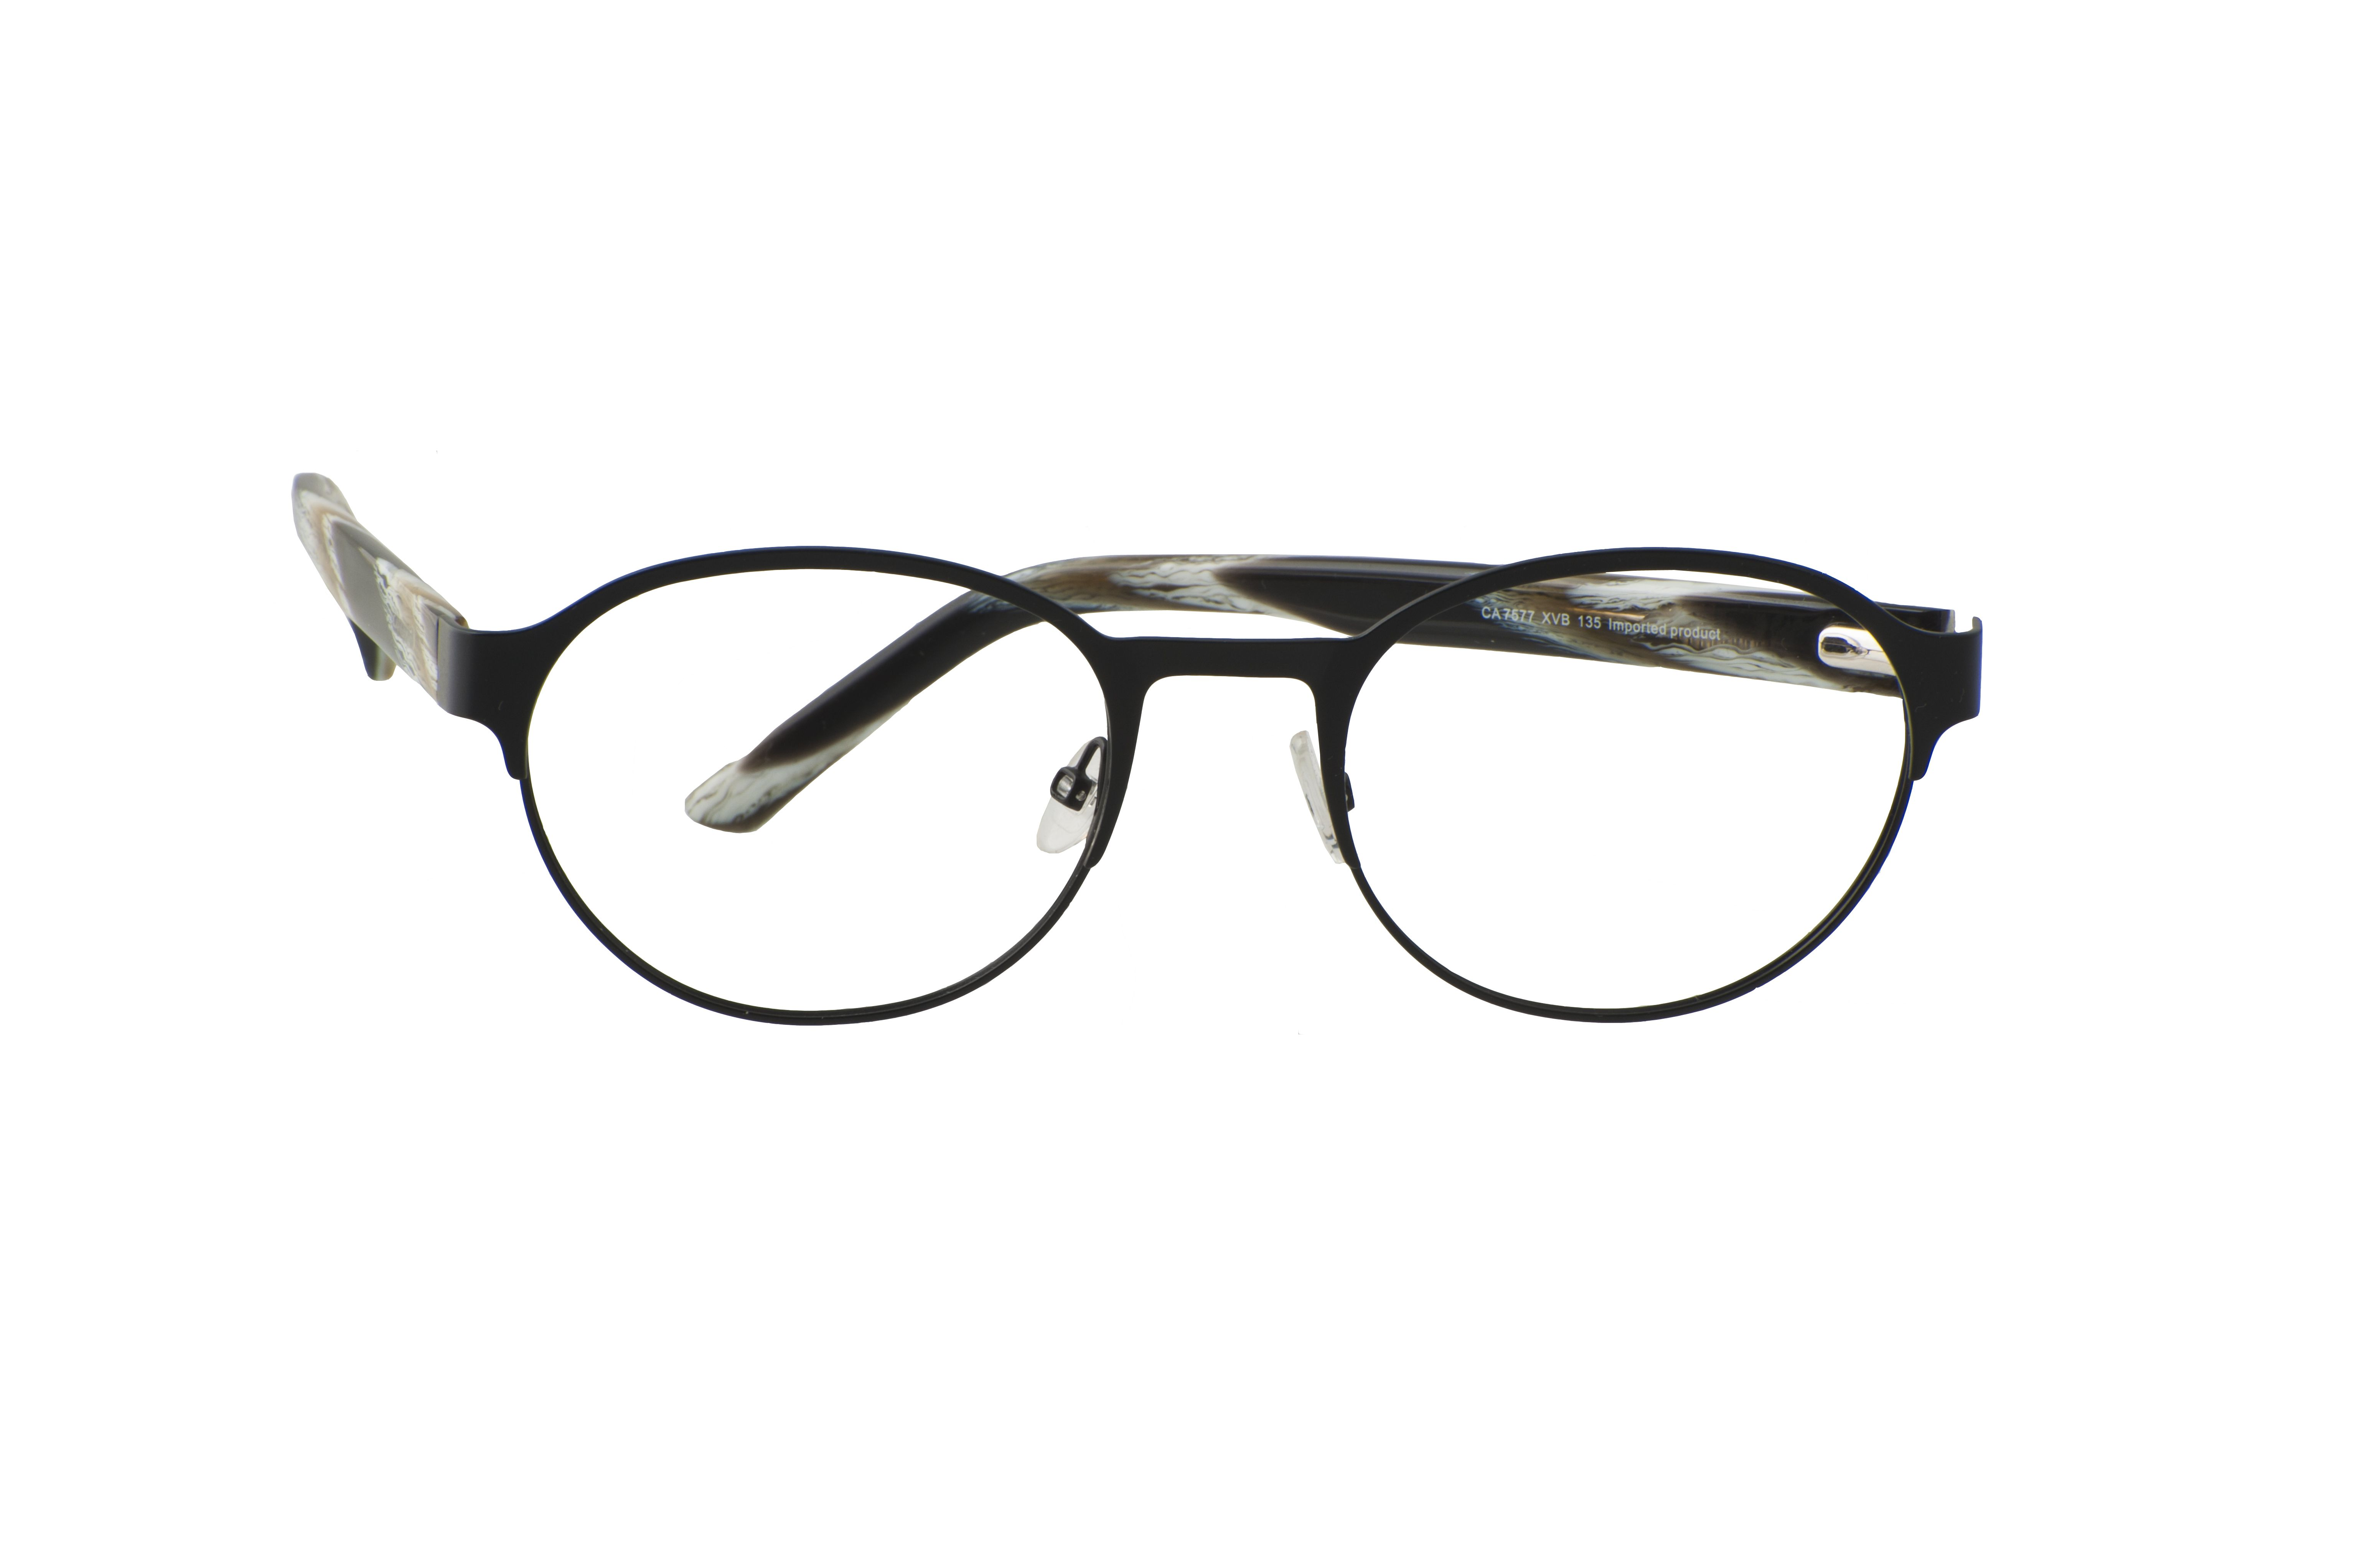 Pin on Synsam campaign eyeglasses